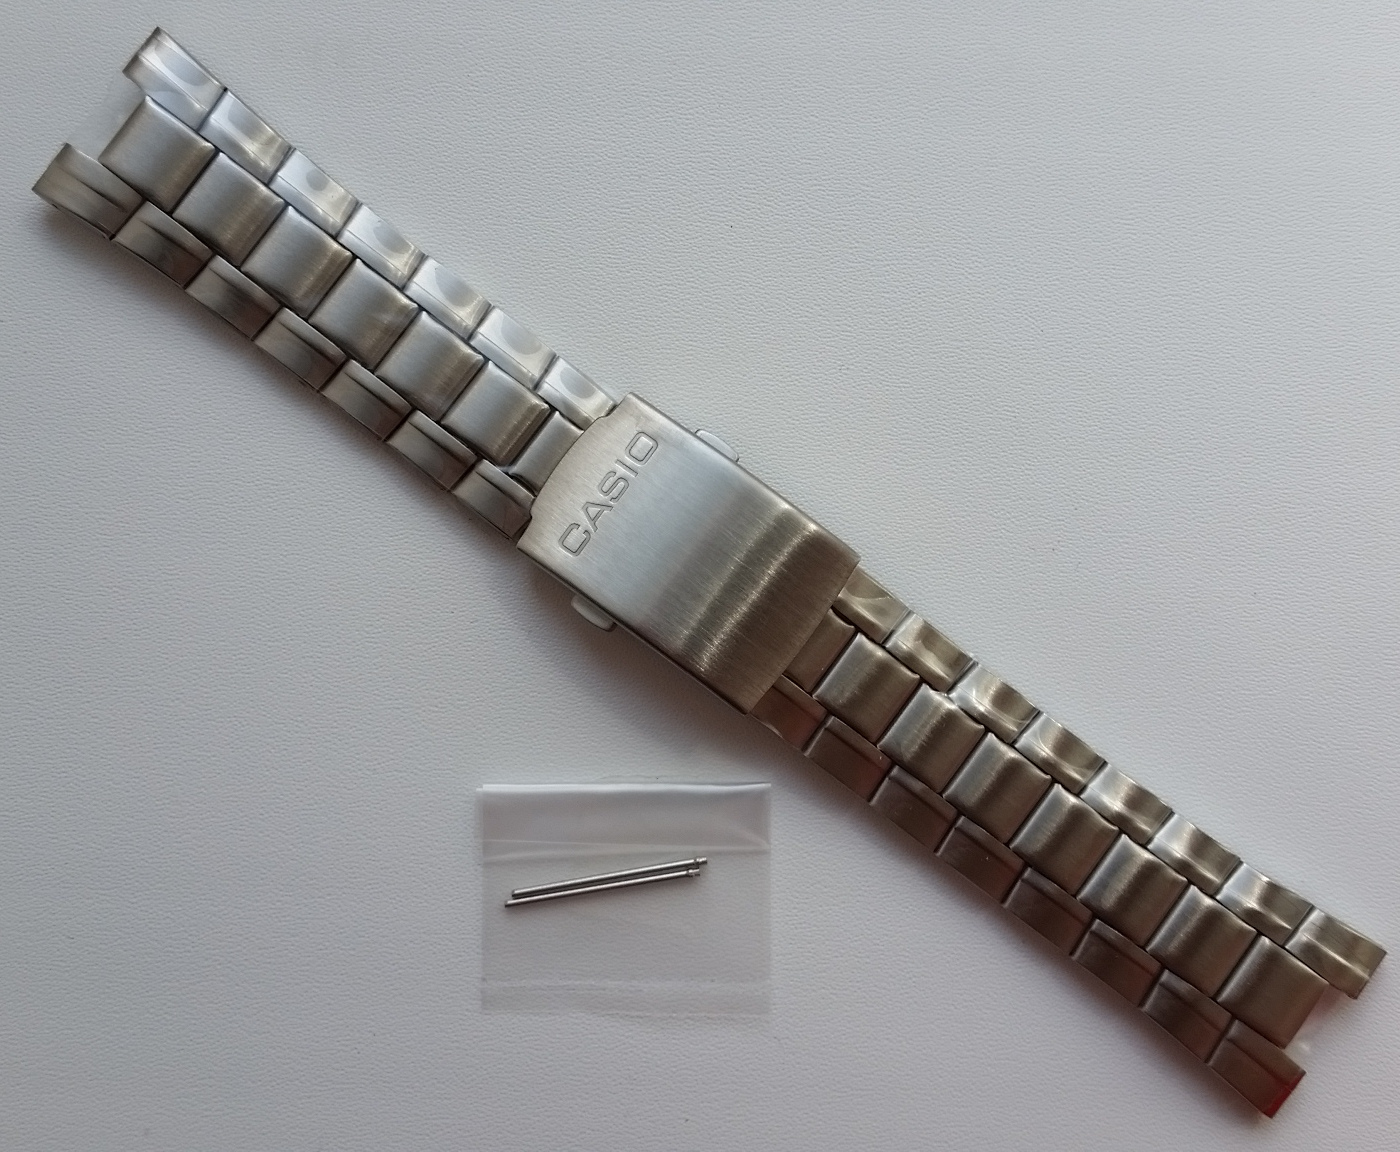 Primary image for Genuine Replacement Watch Band 20mm Stainless Steel Bracelet Casio EF-305D-1A